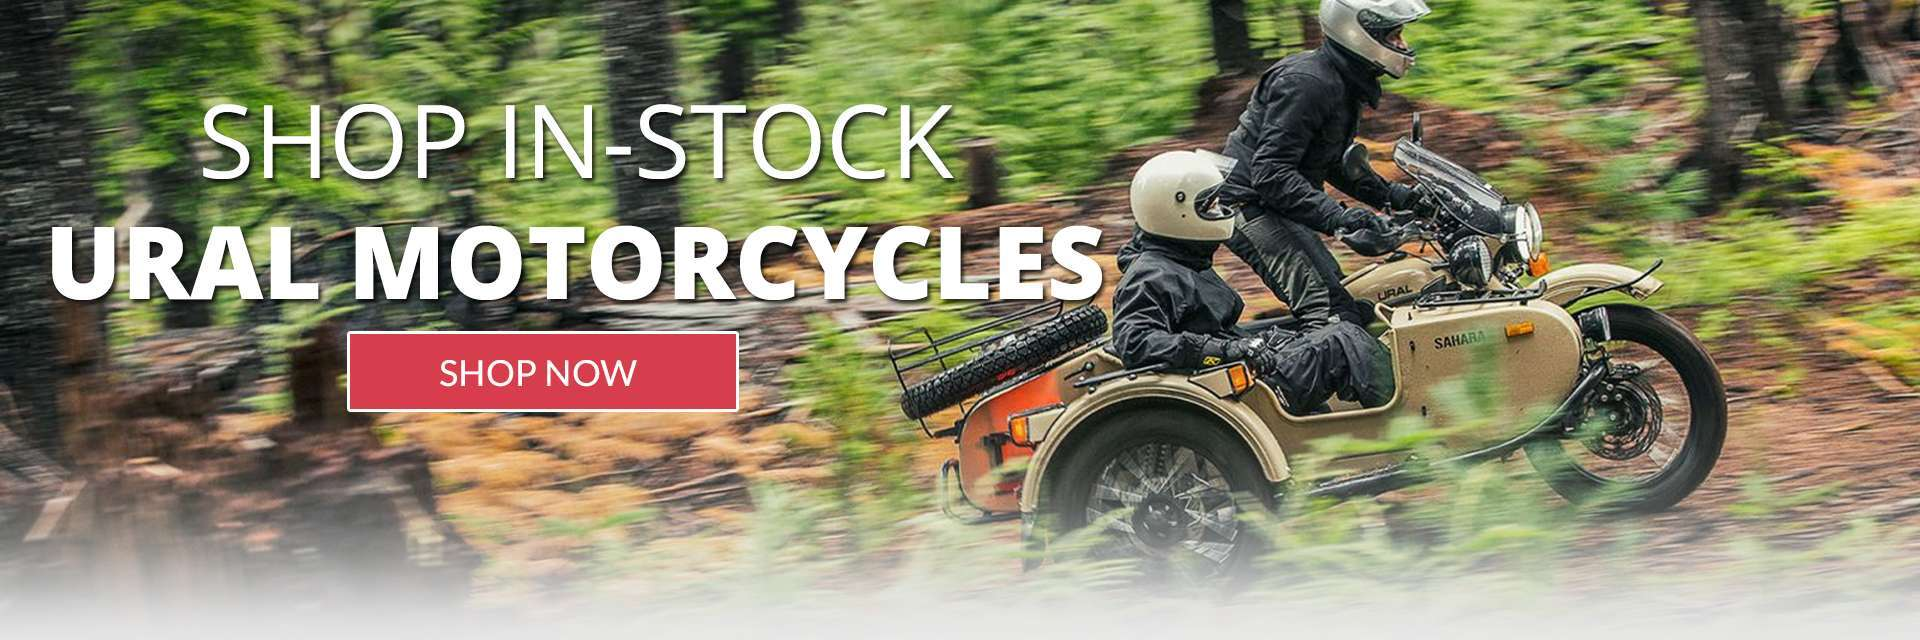 New In-Stock Ural Motorcycles sold at Moto Italia in Edwardsville, IL.